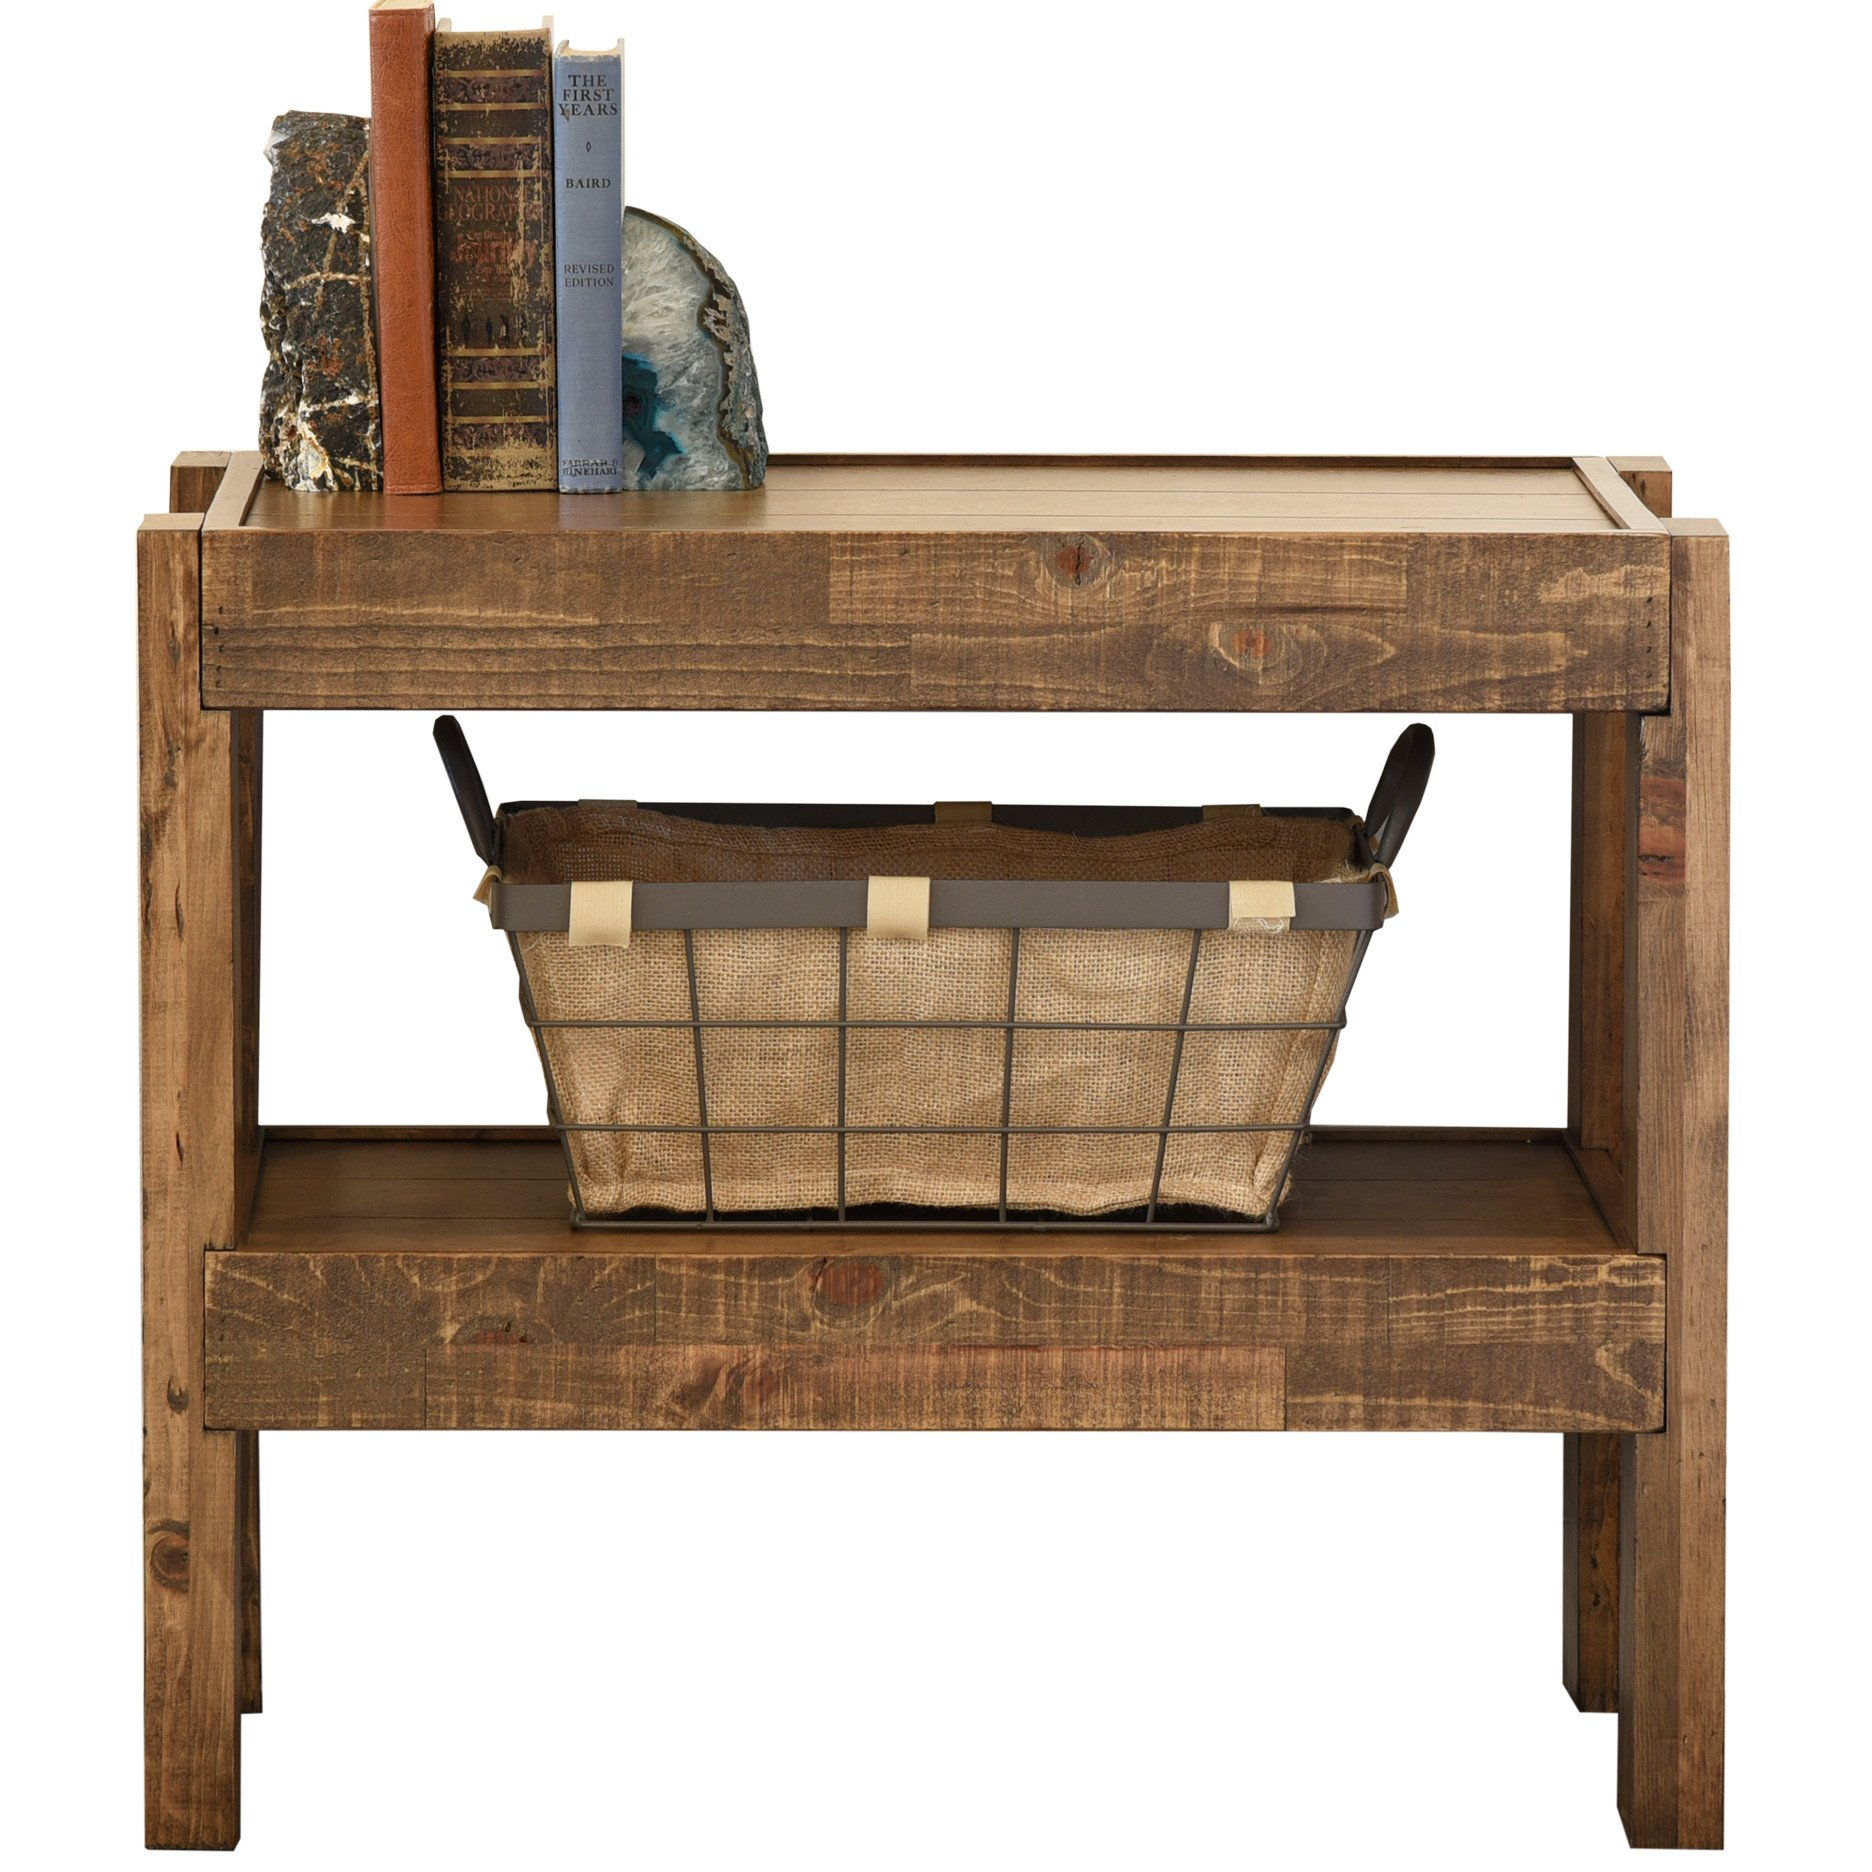 end tables woodwaves reclaimed whitenight stand rustic nautical nightstand presearth farmhouse style accent table pallet wood yellow placemats making small white wicker furniture